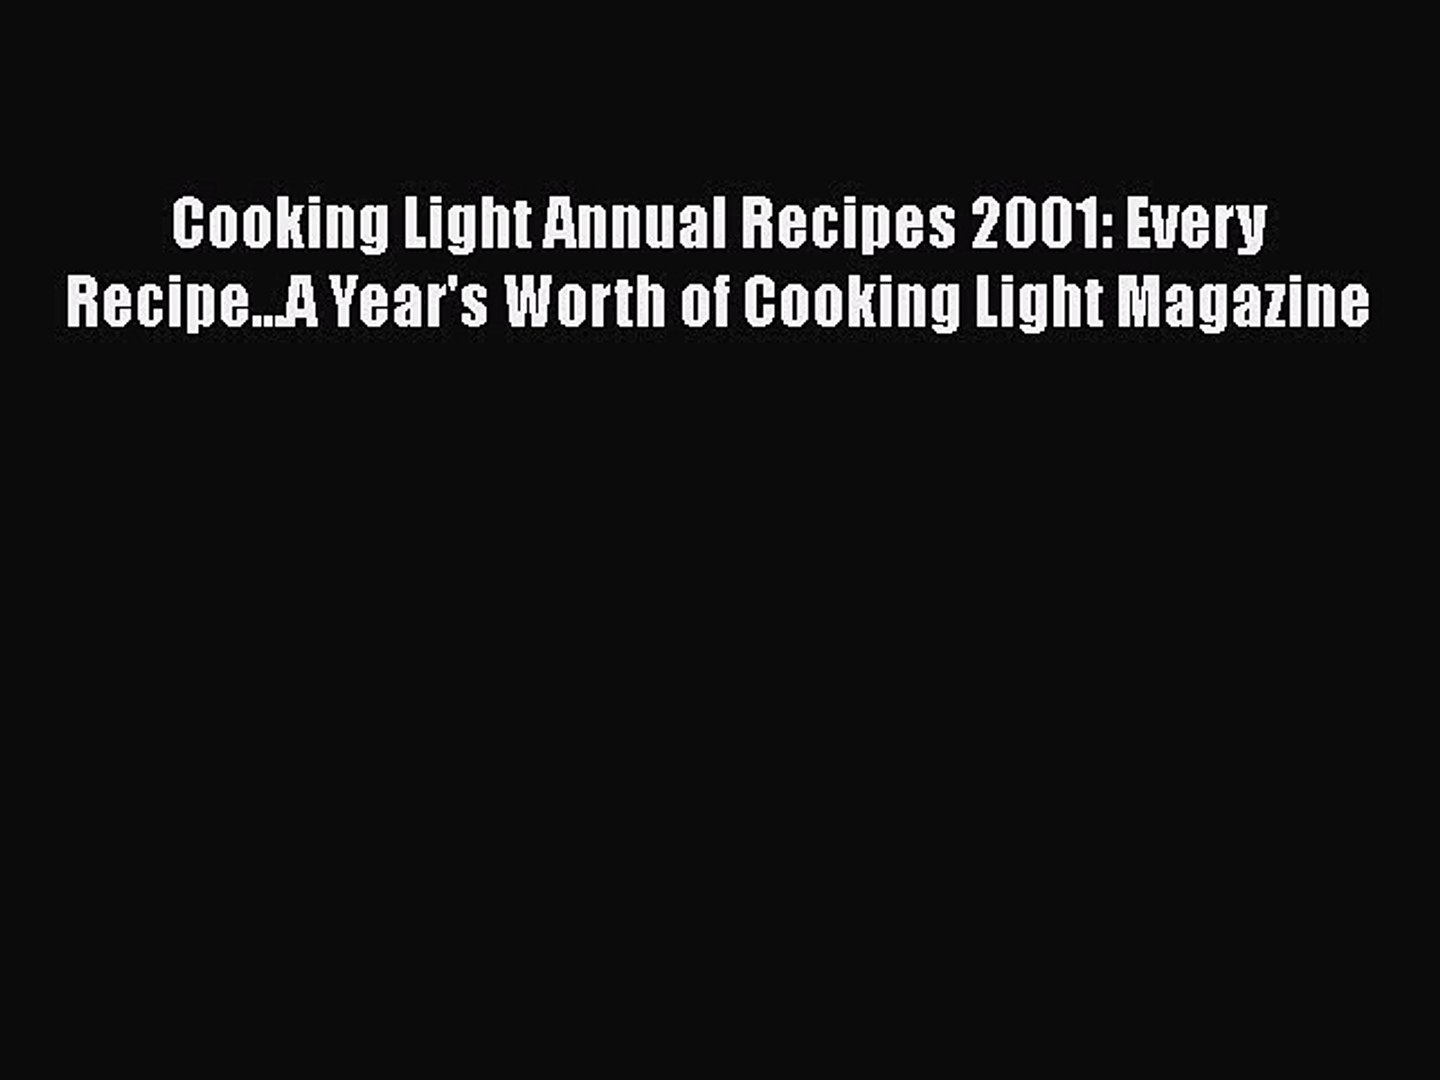 Read Cooking Light Annual Recipes 2001: Every Recipe...A Year's Worth of Cooking Light Magazine